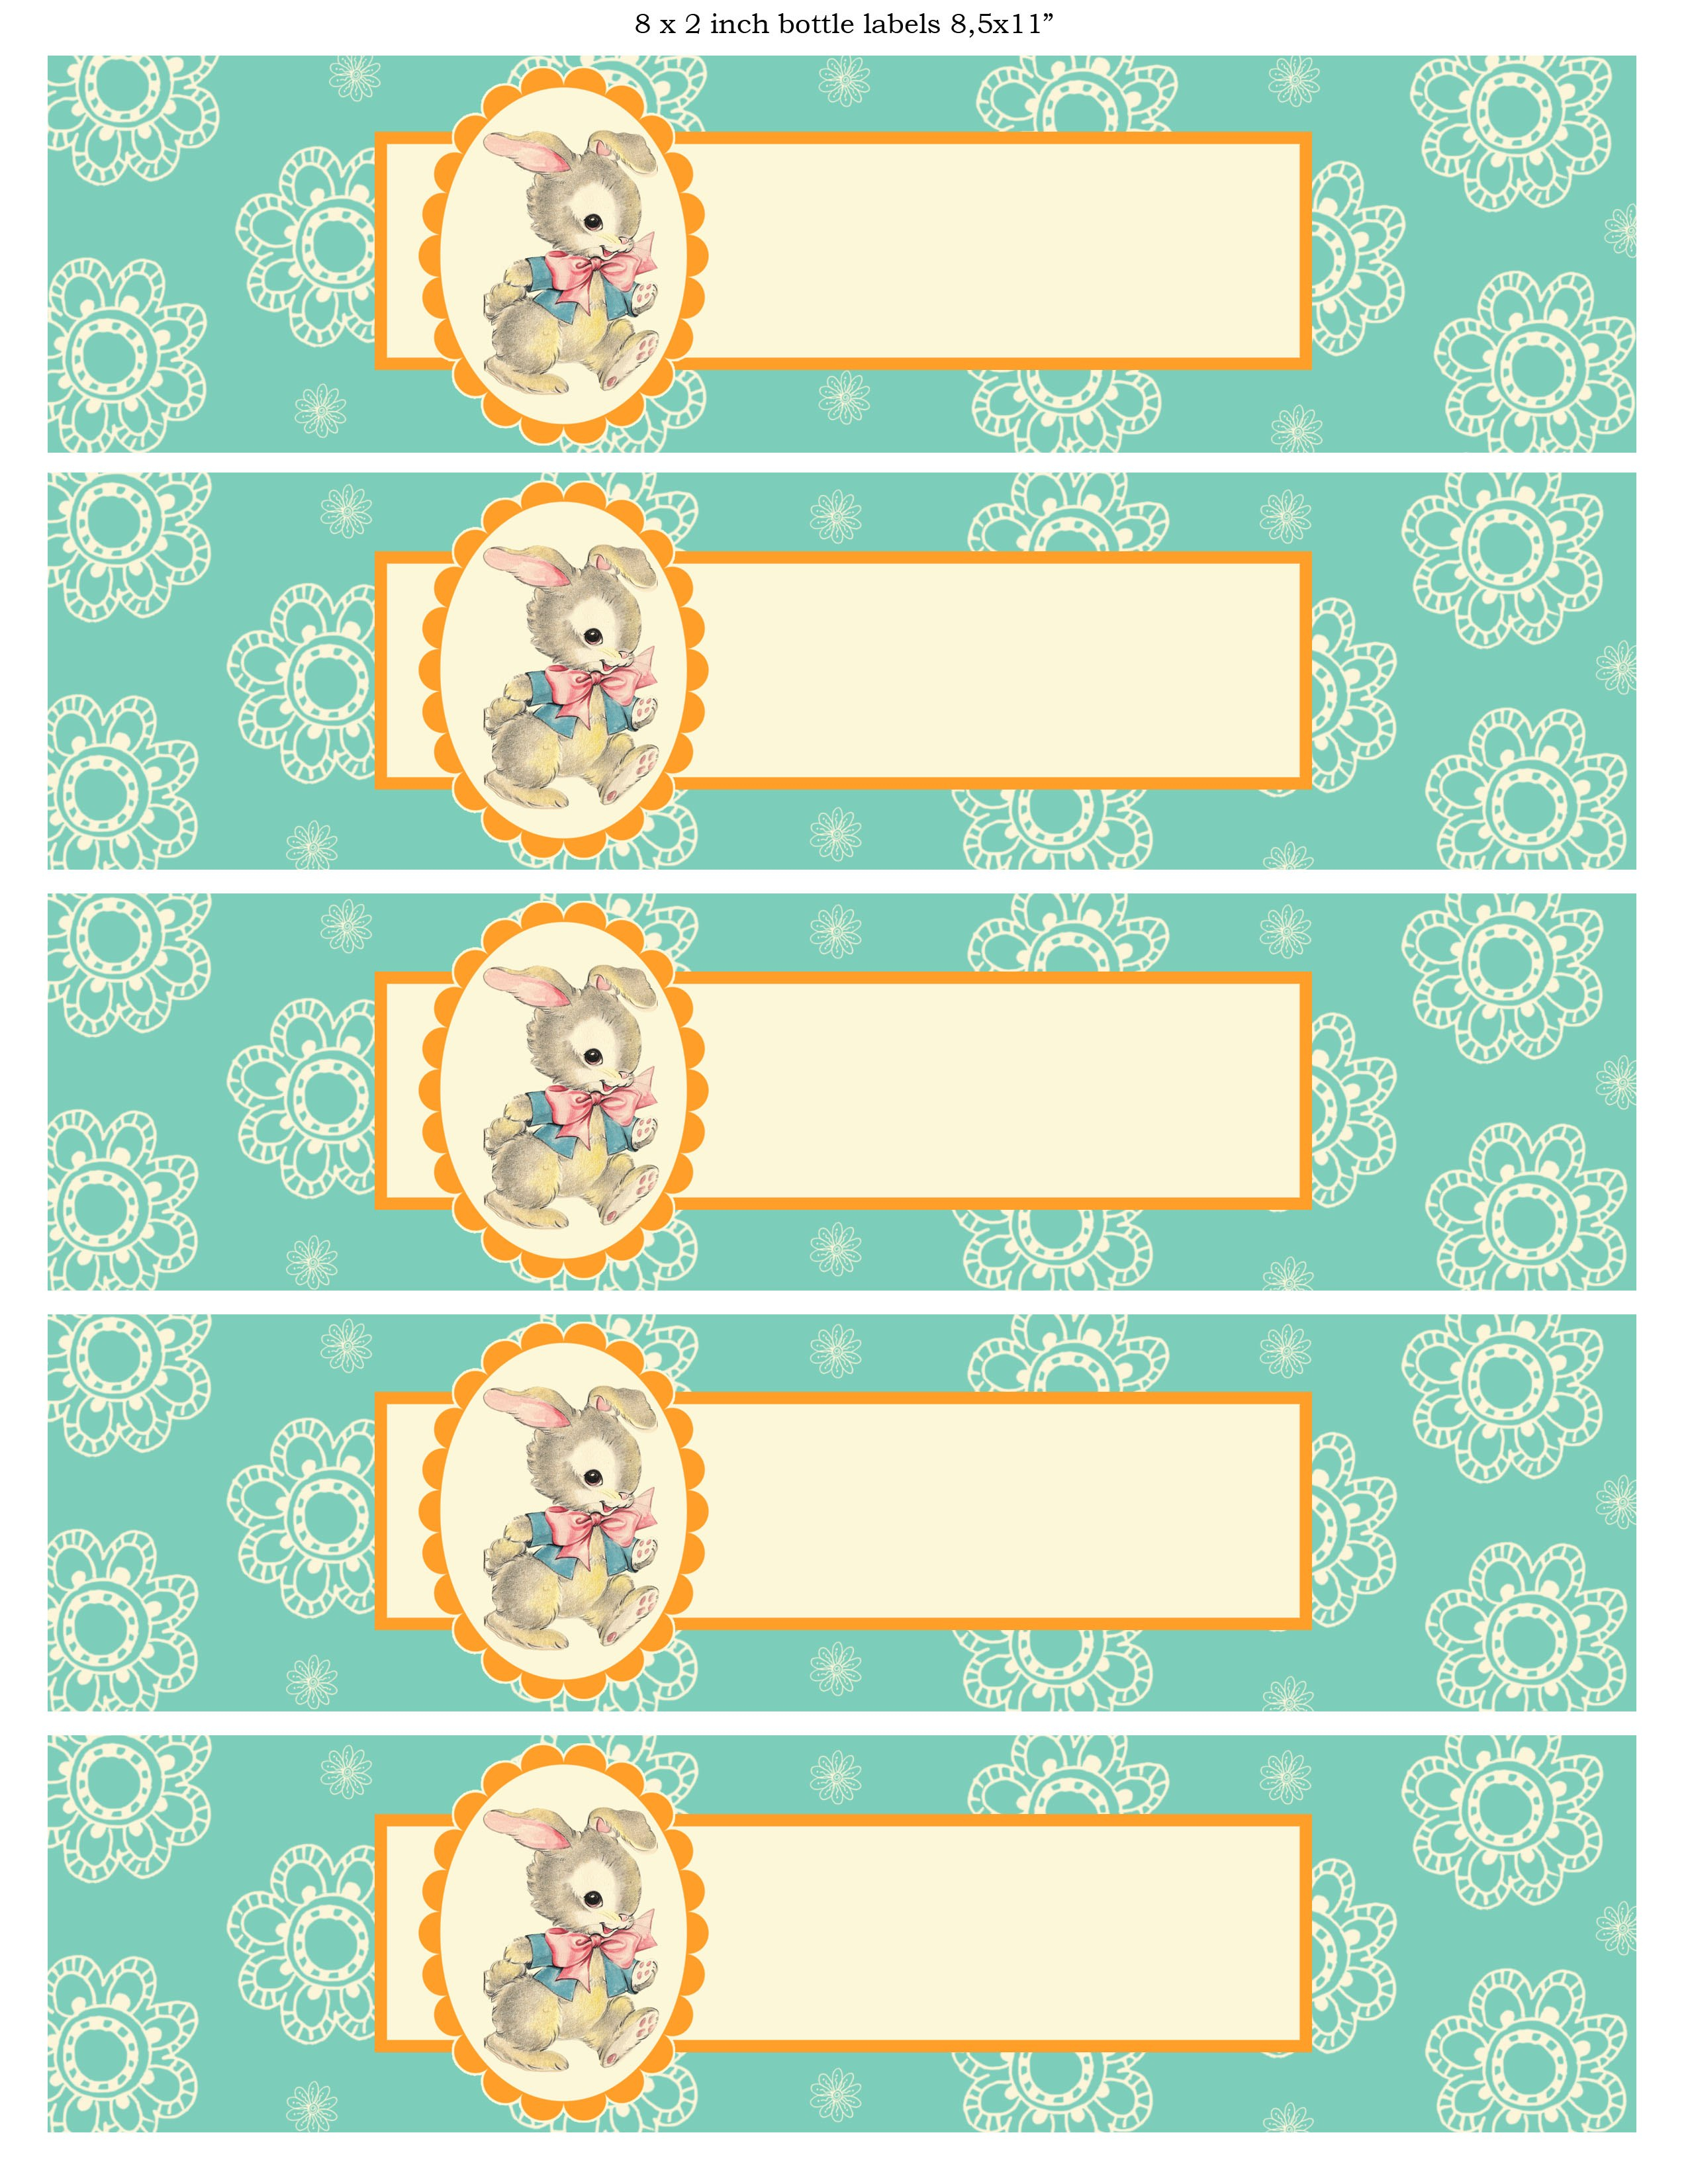 Free Printable Baby Shower Templates With Baby Shower Bottle Labels Template